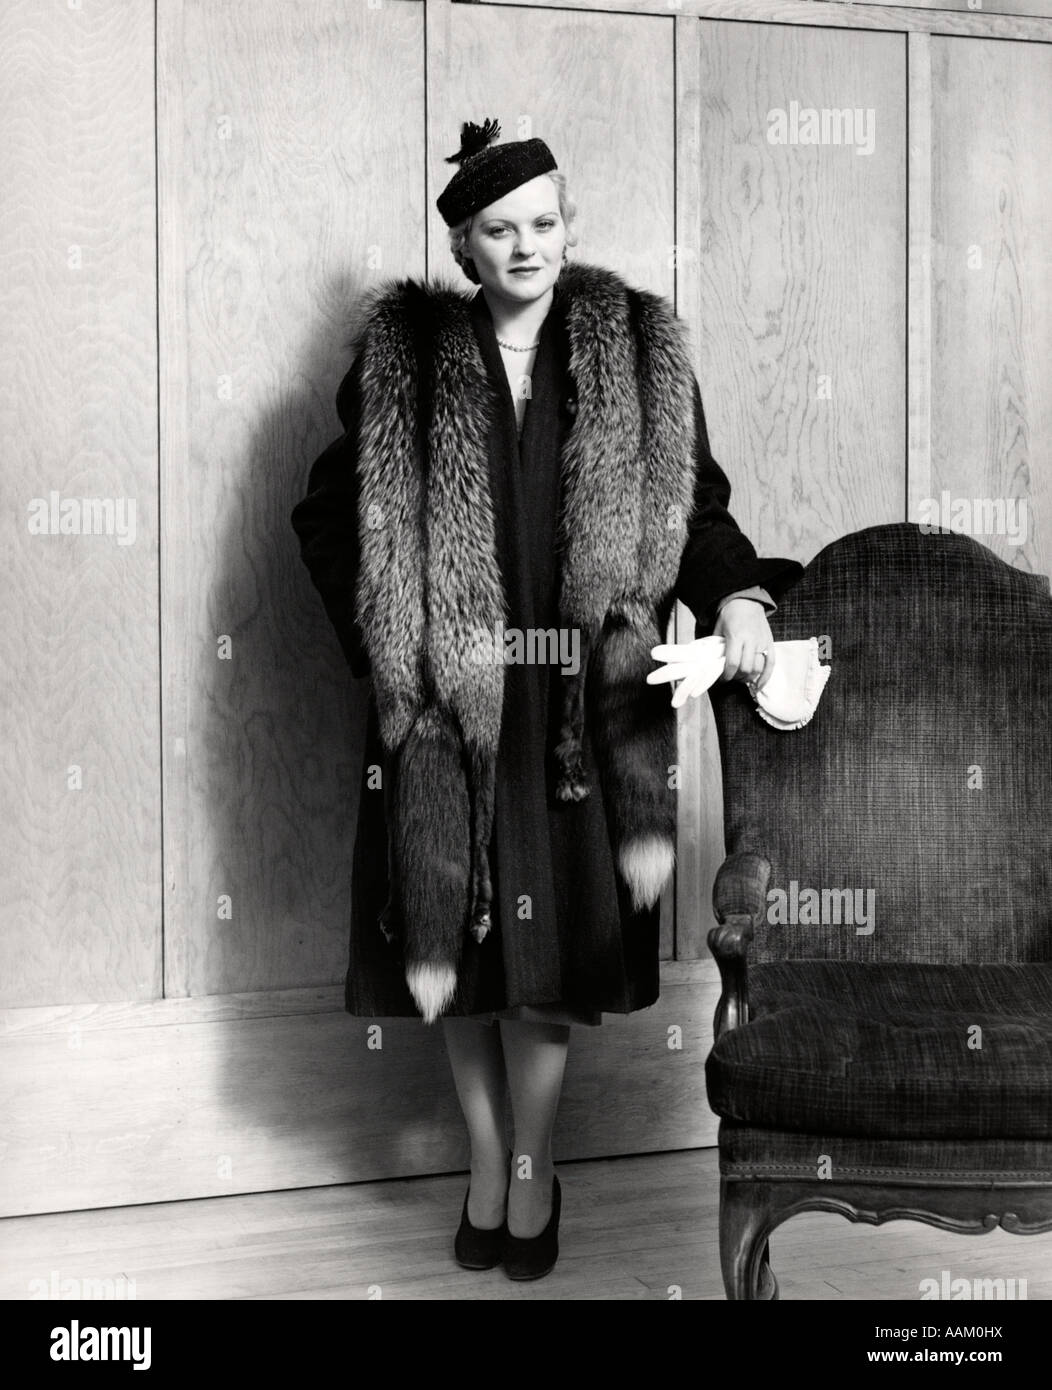 1930s Woman Wearing Long Coat And Fox Fur Stole Holding